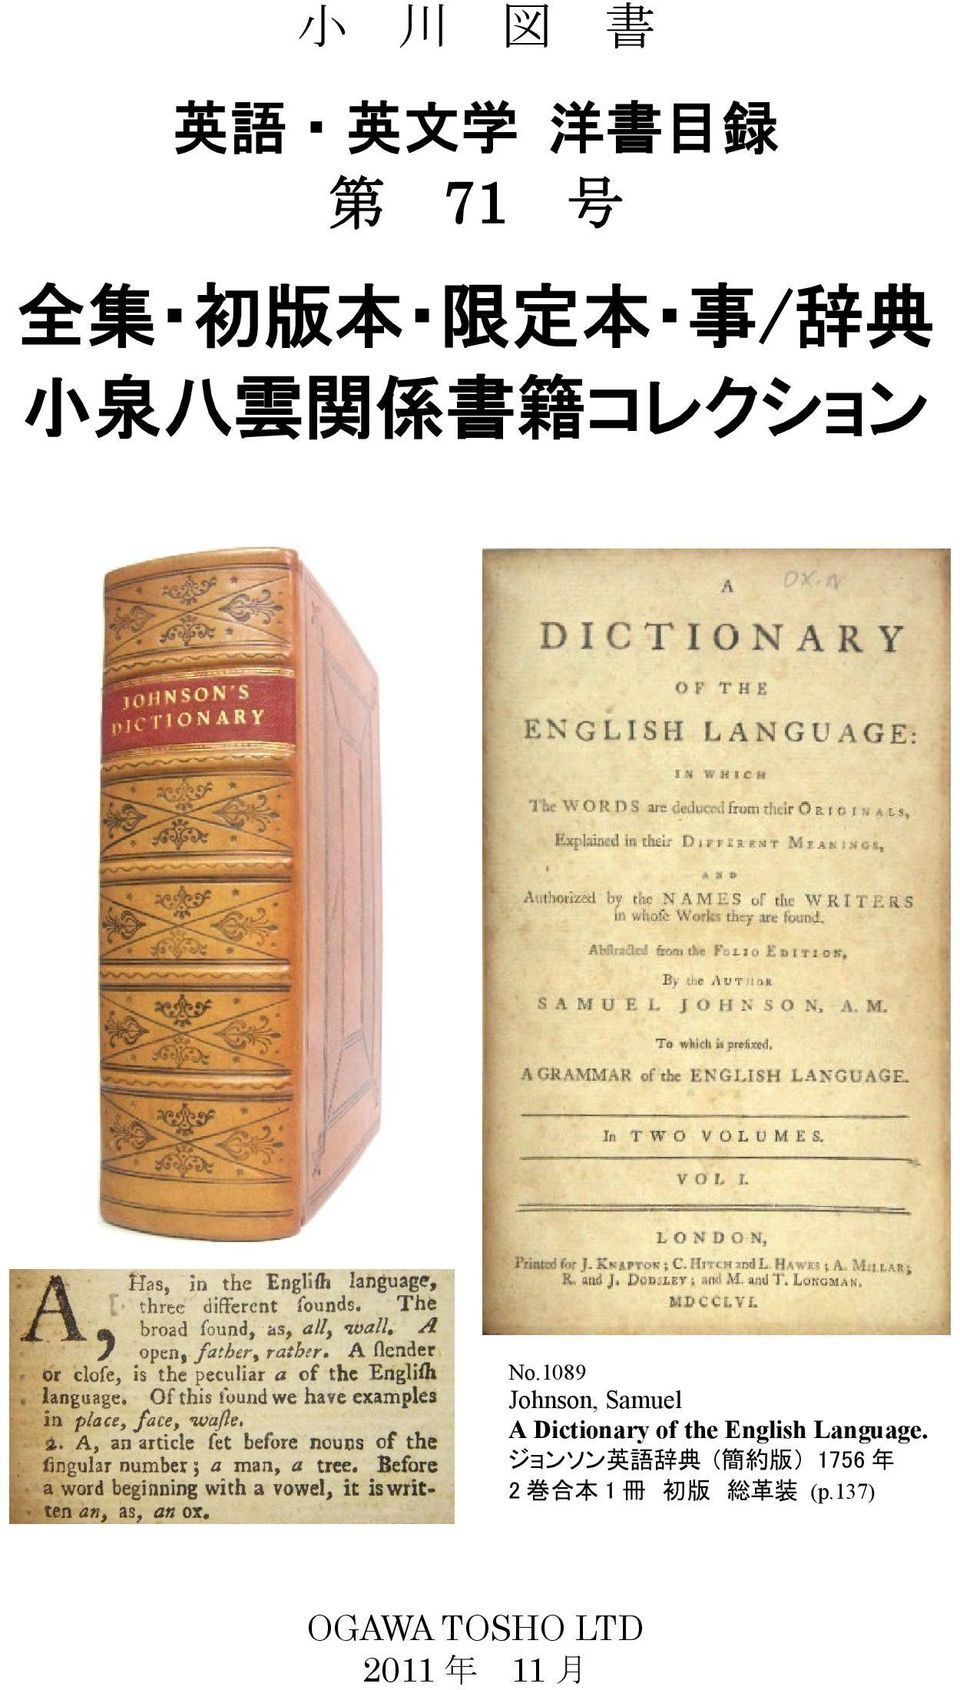 1089 Johnson, Samuel A Dictionary of the English